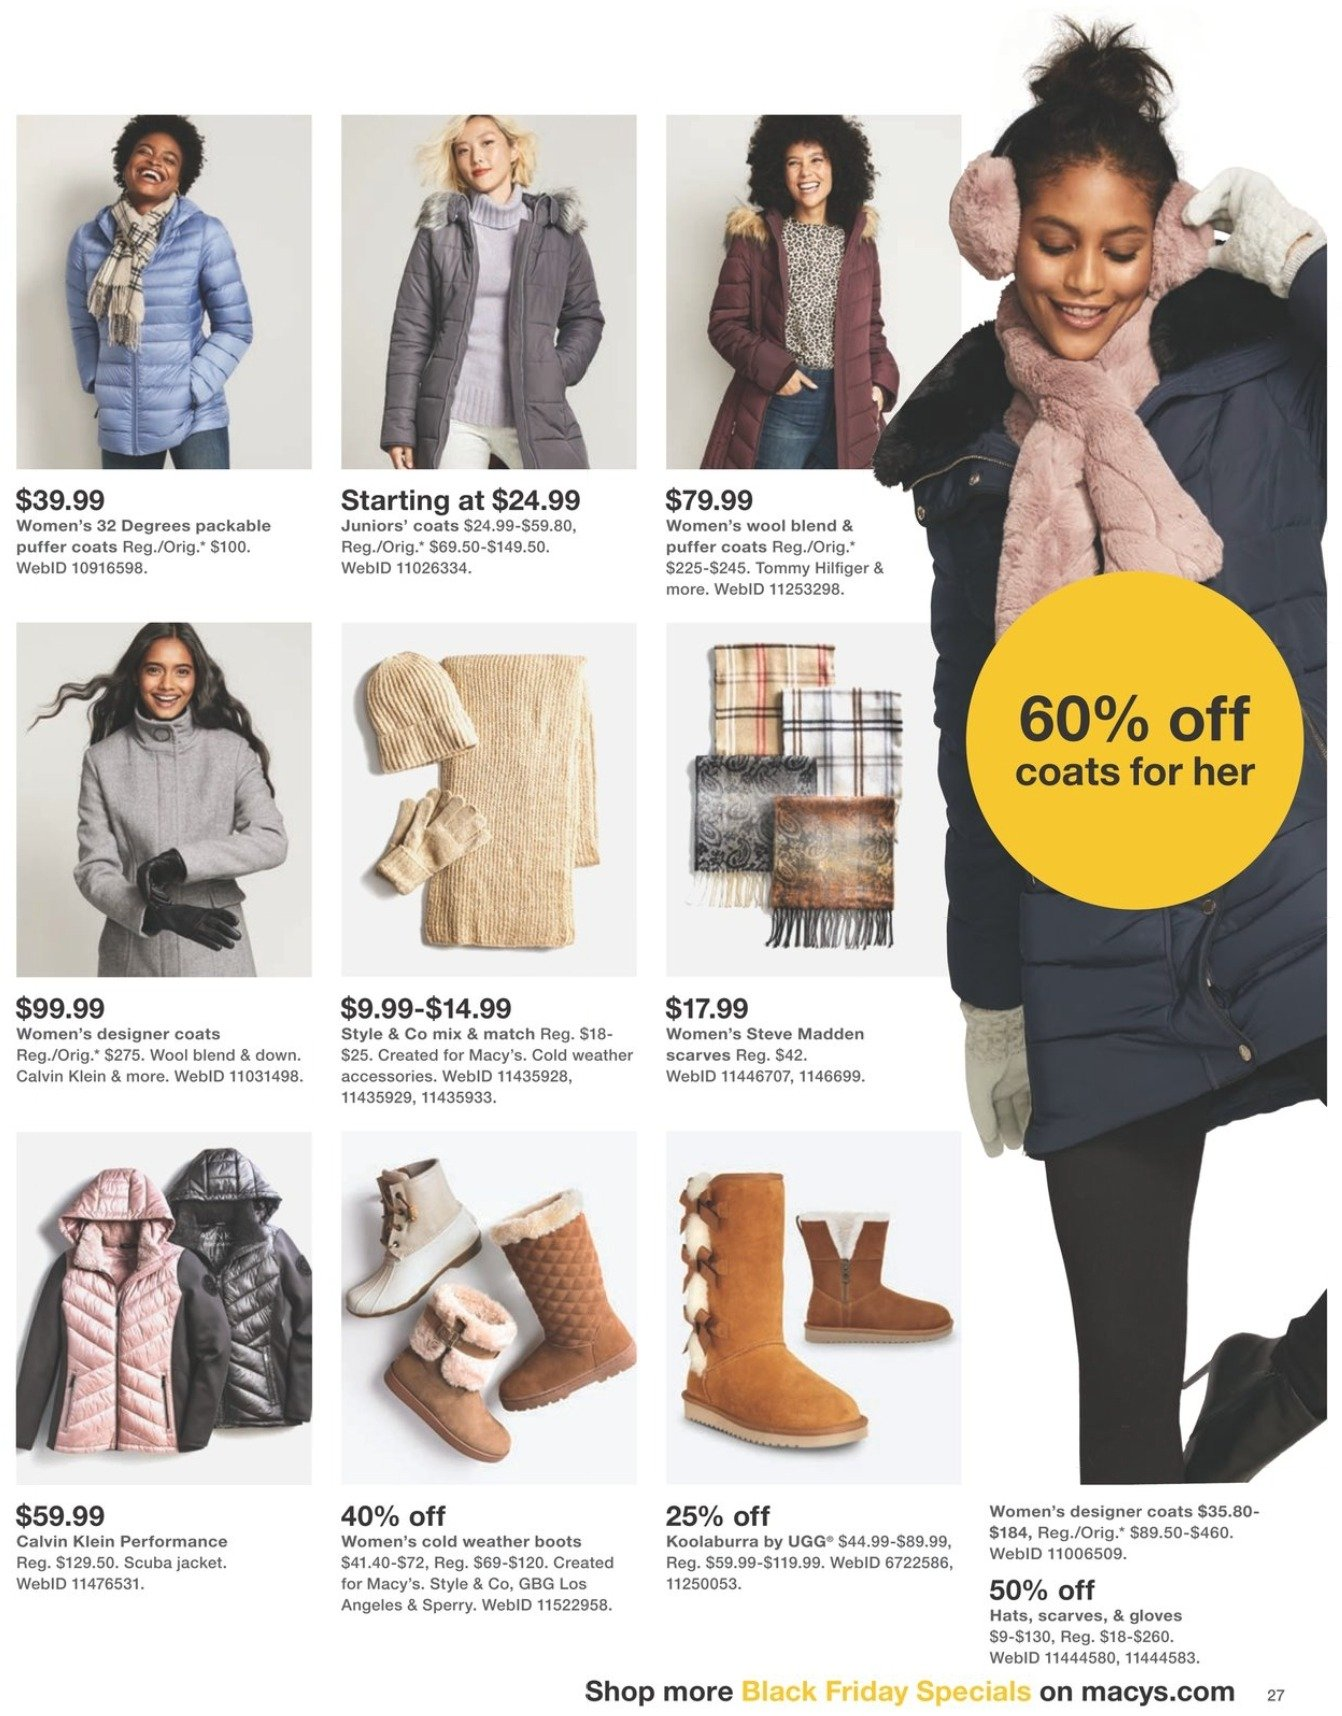 Macy's Black Friday 2020 Page 27